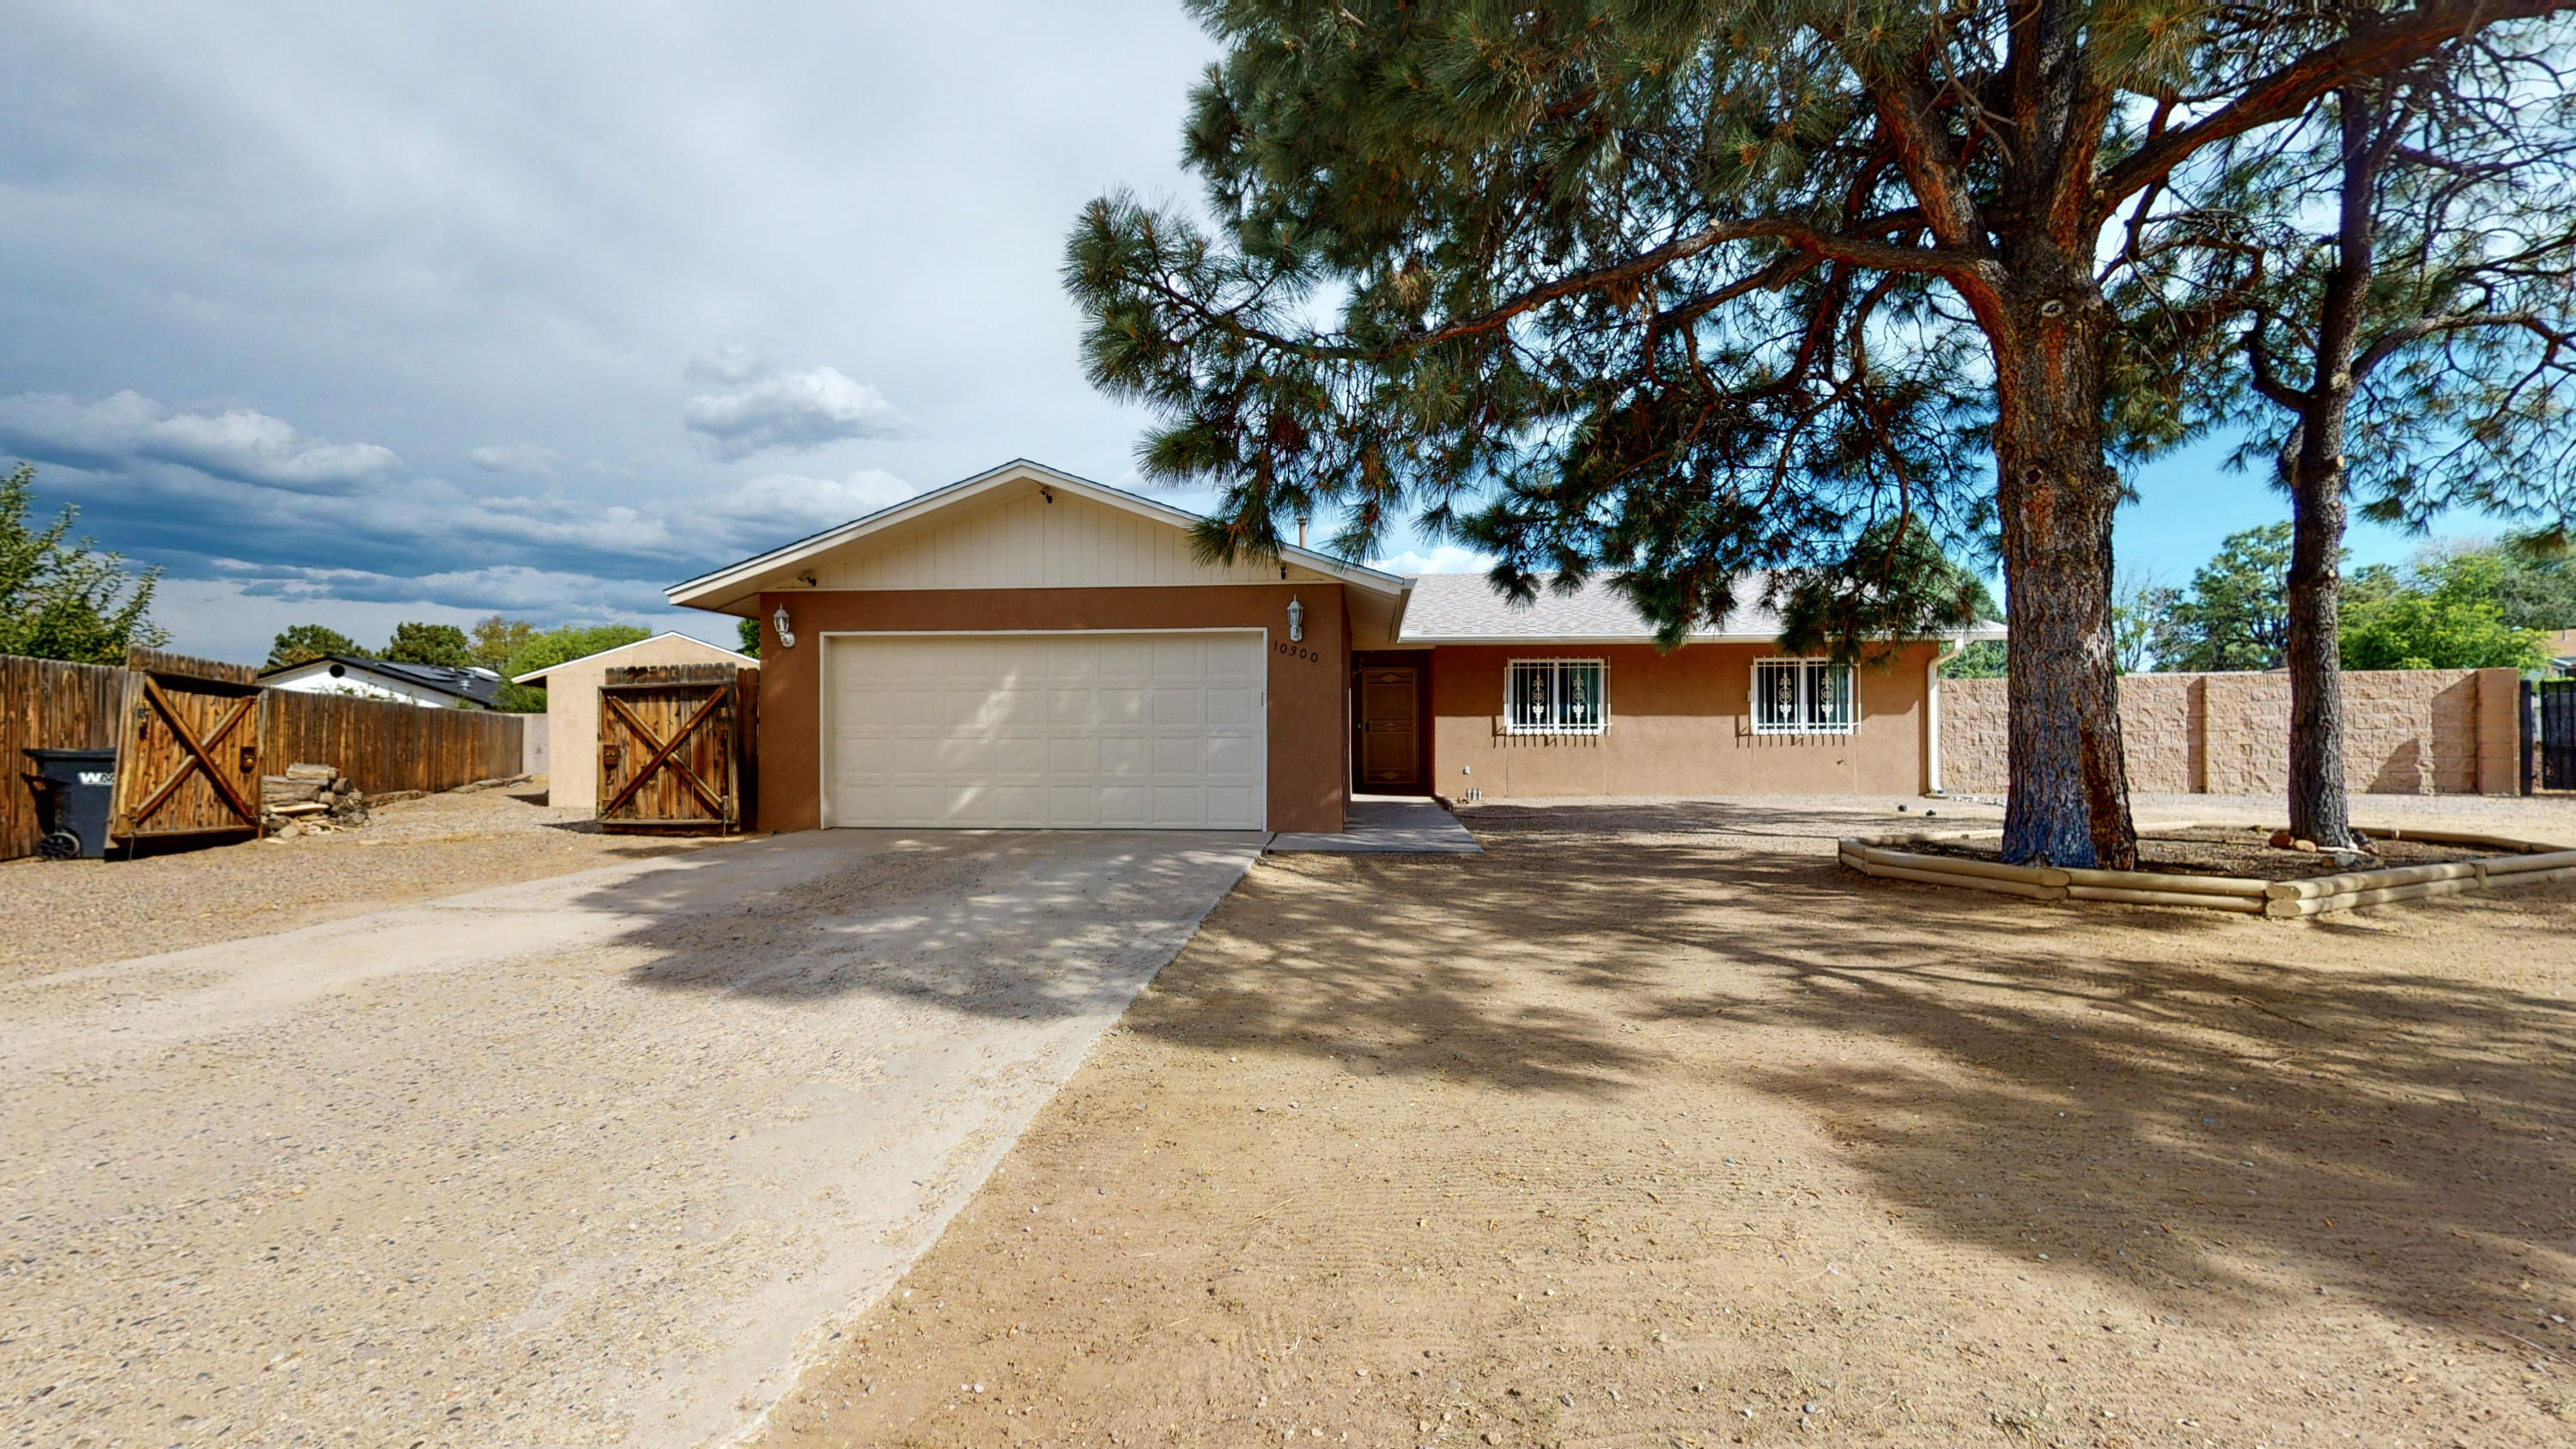 Do not miss this one!  Cul-de-sac with backyard access sitting on .29 acre lot.  Updates include: New roof & gutters (2019) paint, newer windows, furnace, evaporative cooler, water heater, carpet, updated bathrooms.  There is plenty of room to enjoy both inside and out!